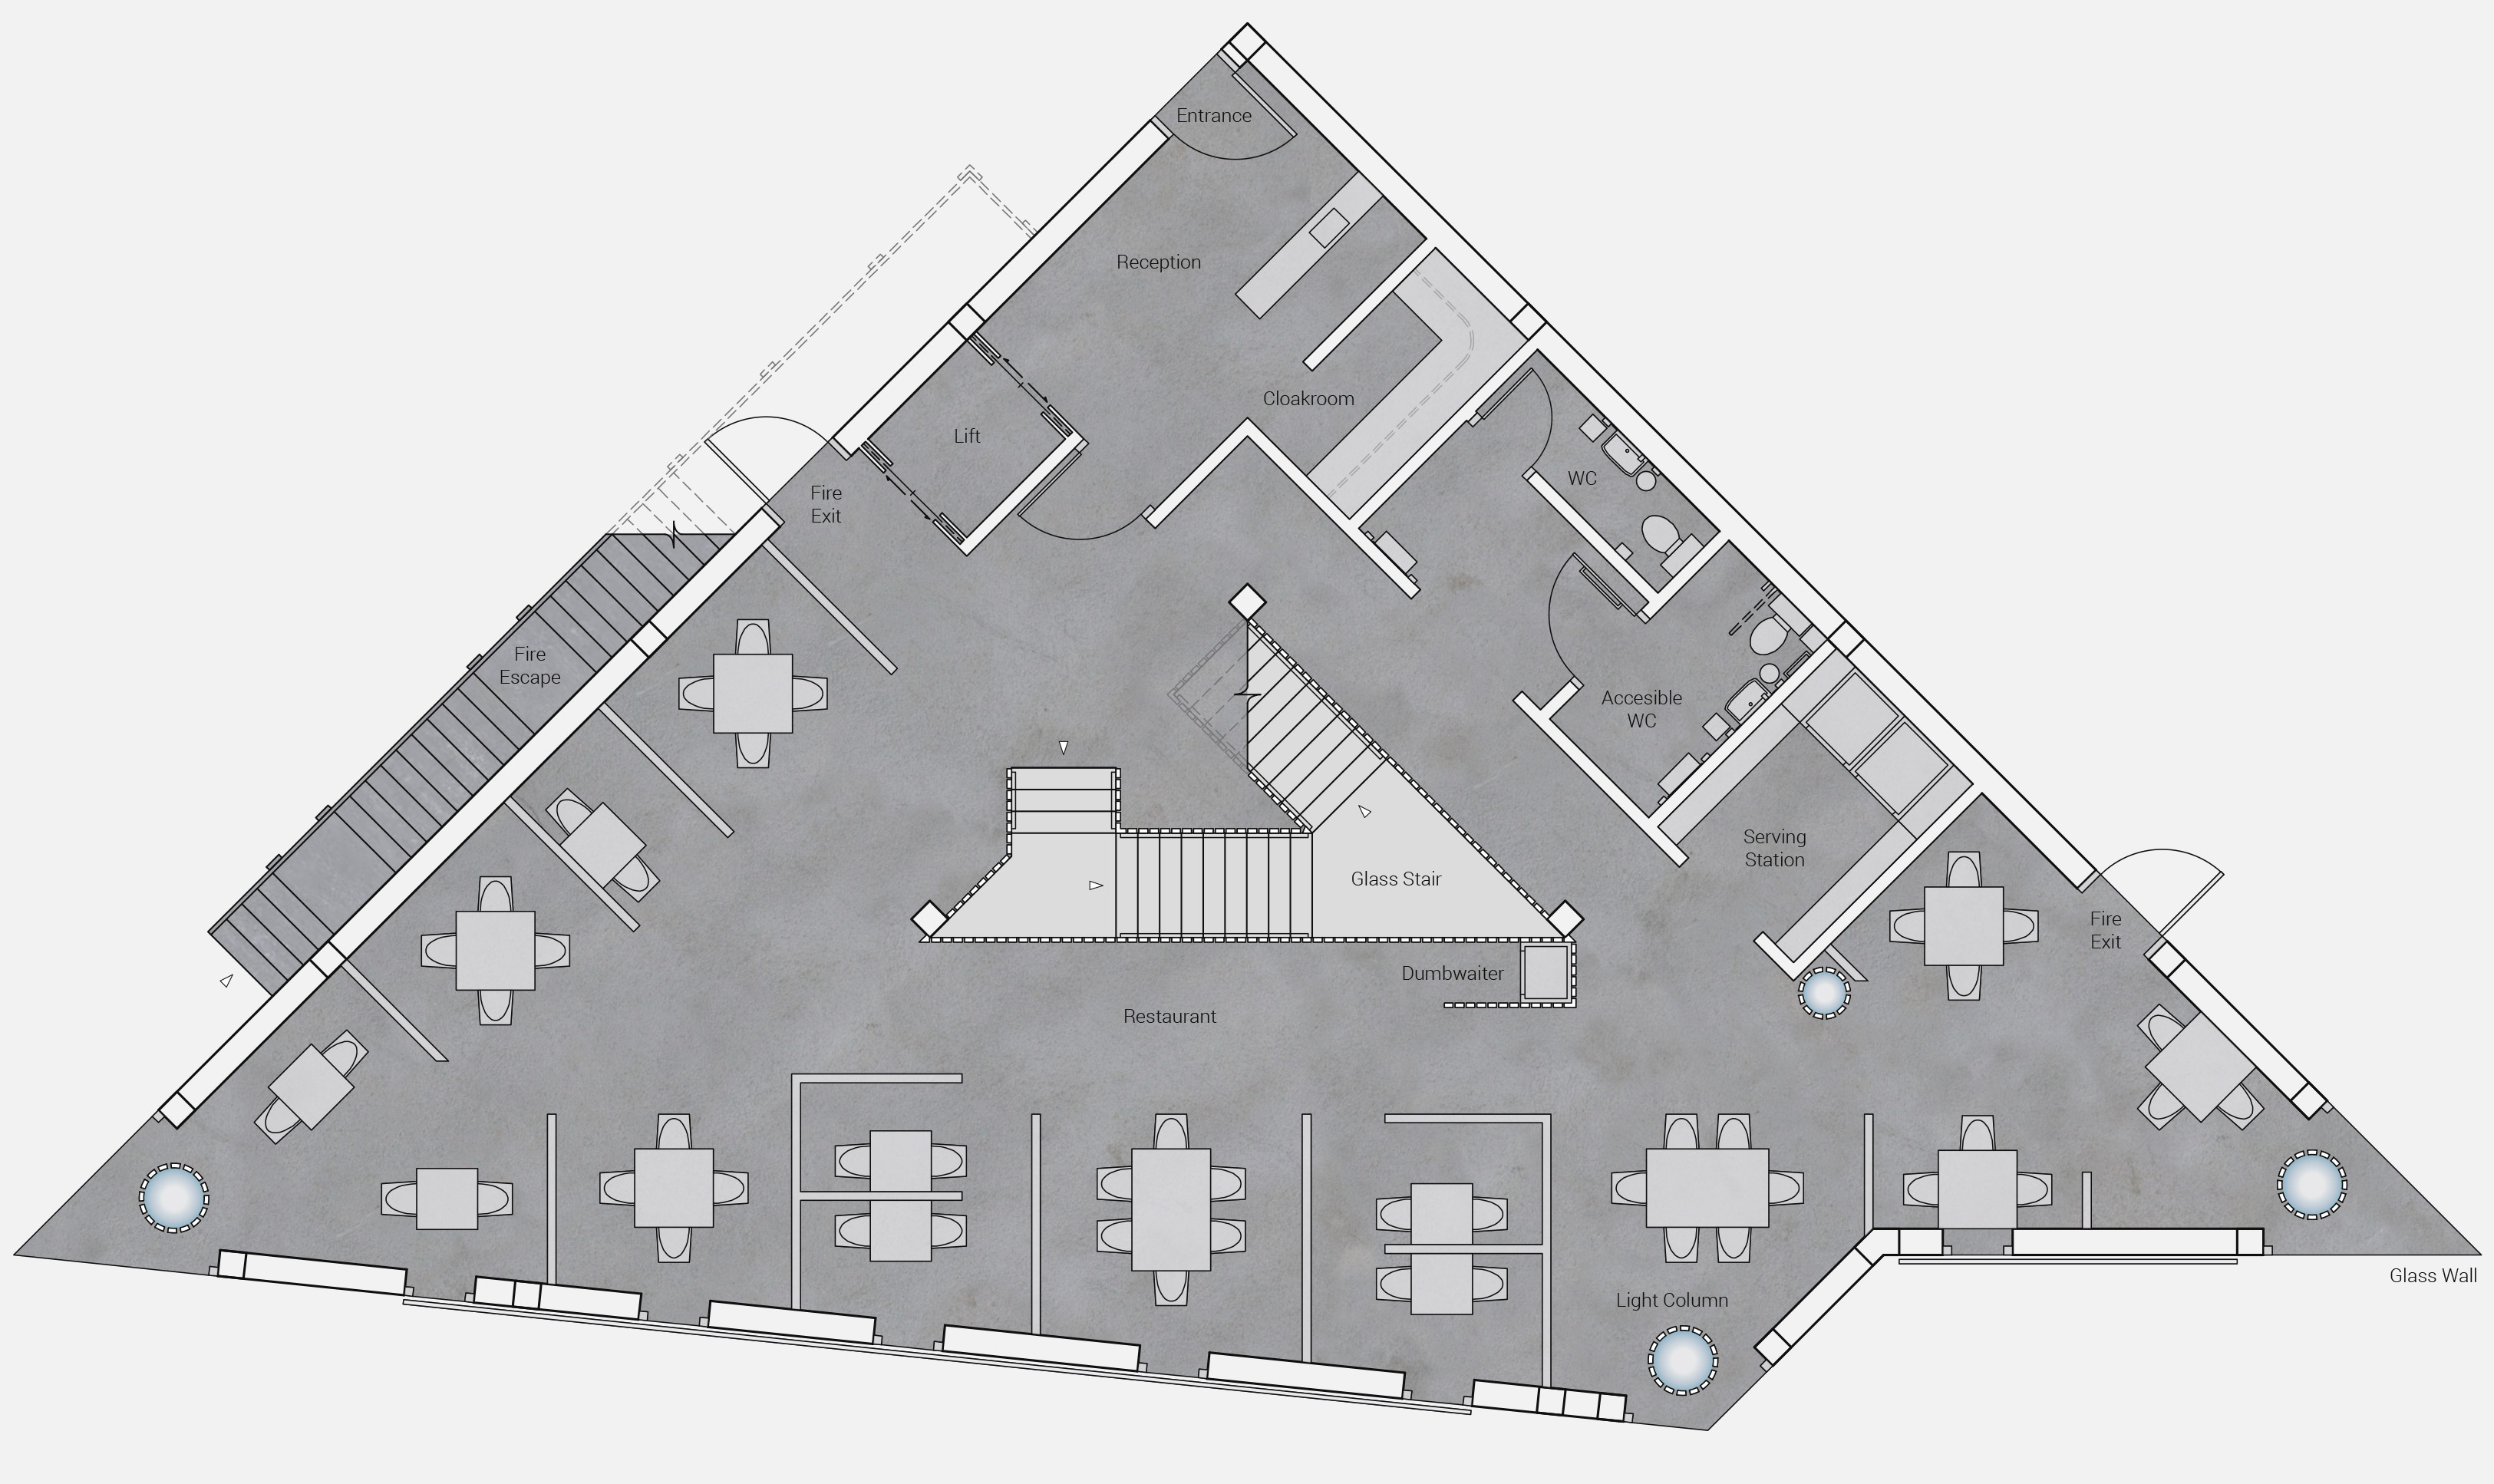 Interior design ground floor plan for Prohibit restaurant